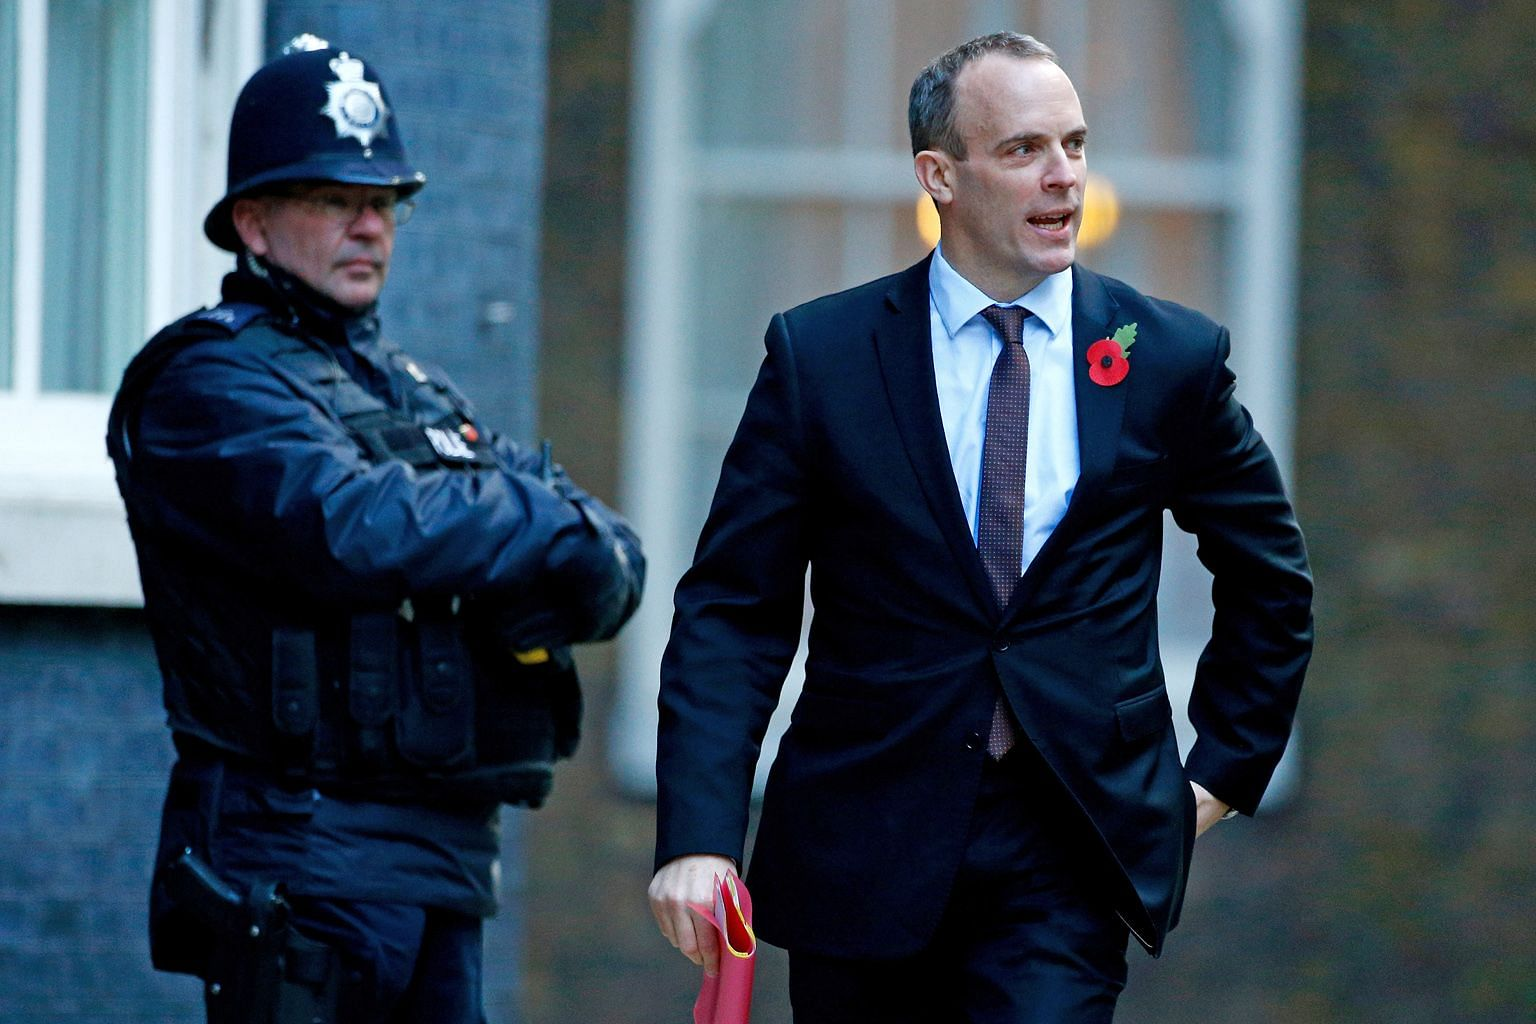 Mr Dominic Raab is the second Brexit secretary to quit over British Prime Minister Theresa May's plans for the country to leave the European Union. He quit yesterday, saying that he could not support the proposed deal.